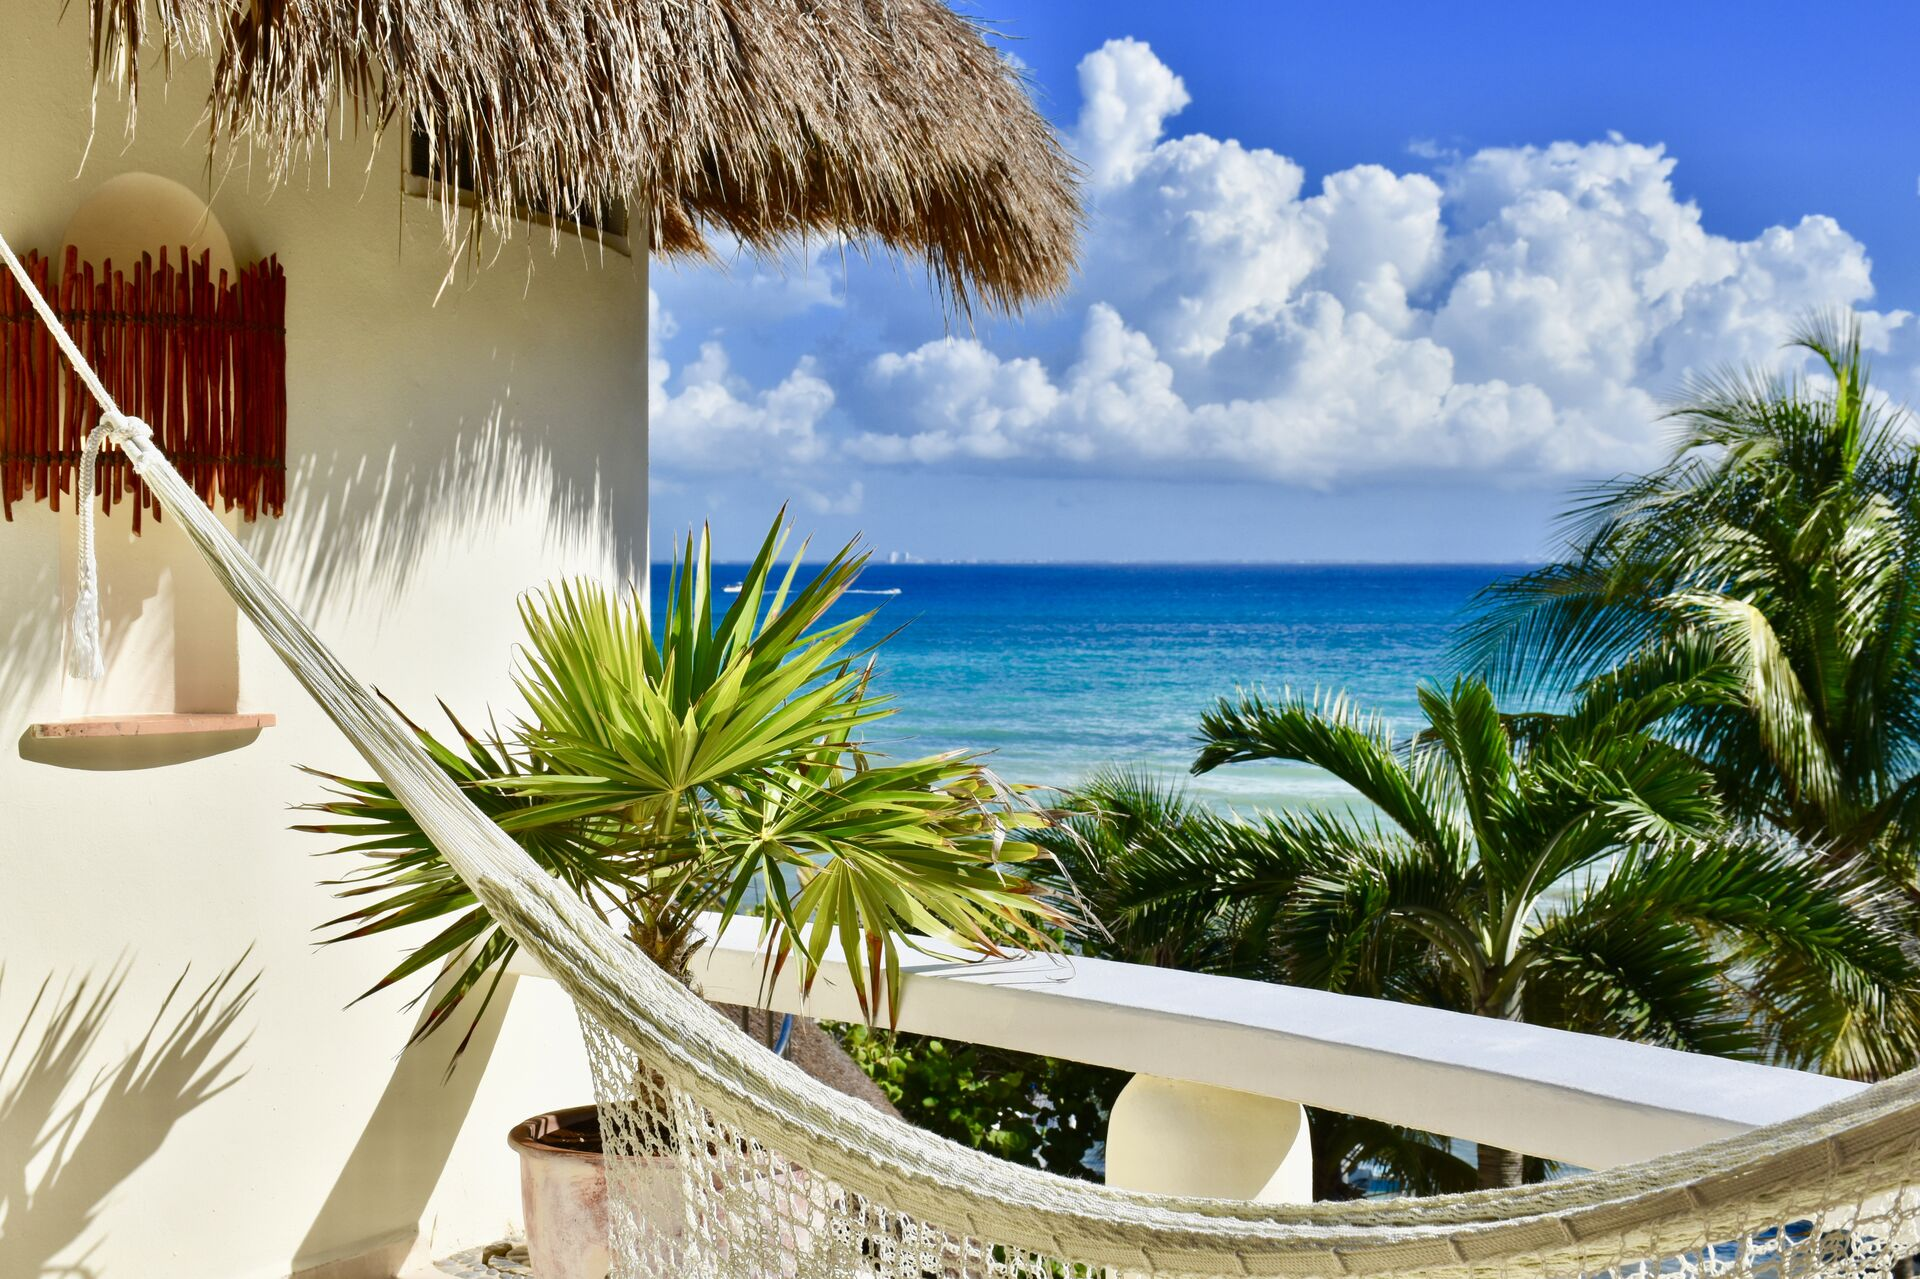 Your balcony view.